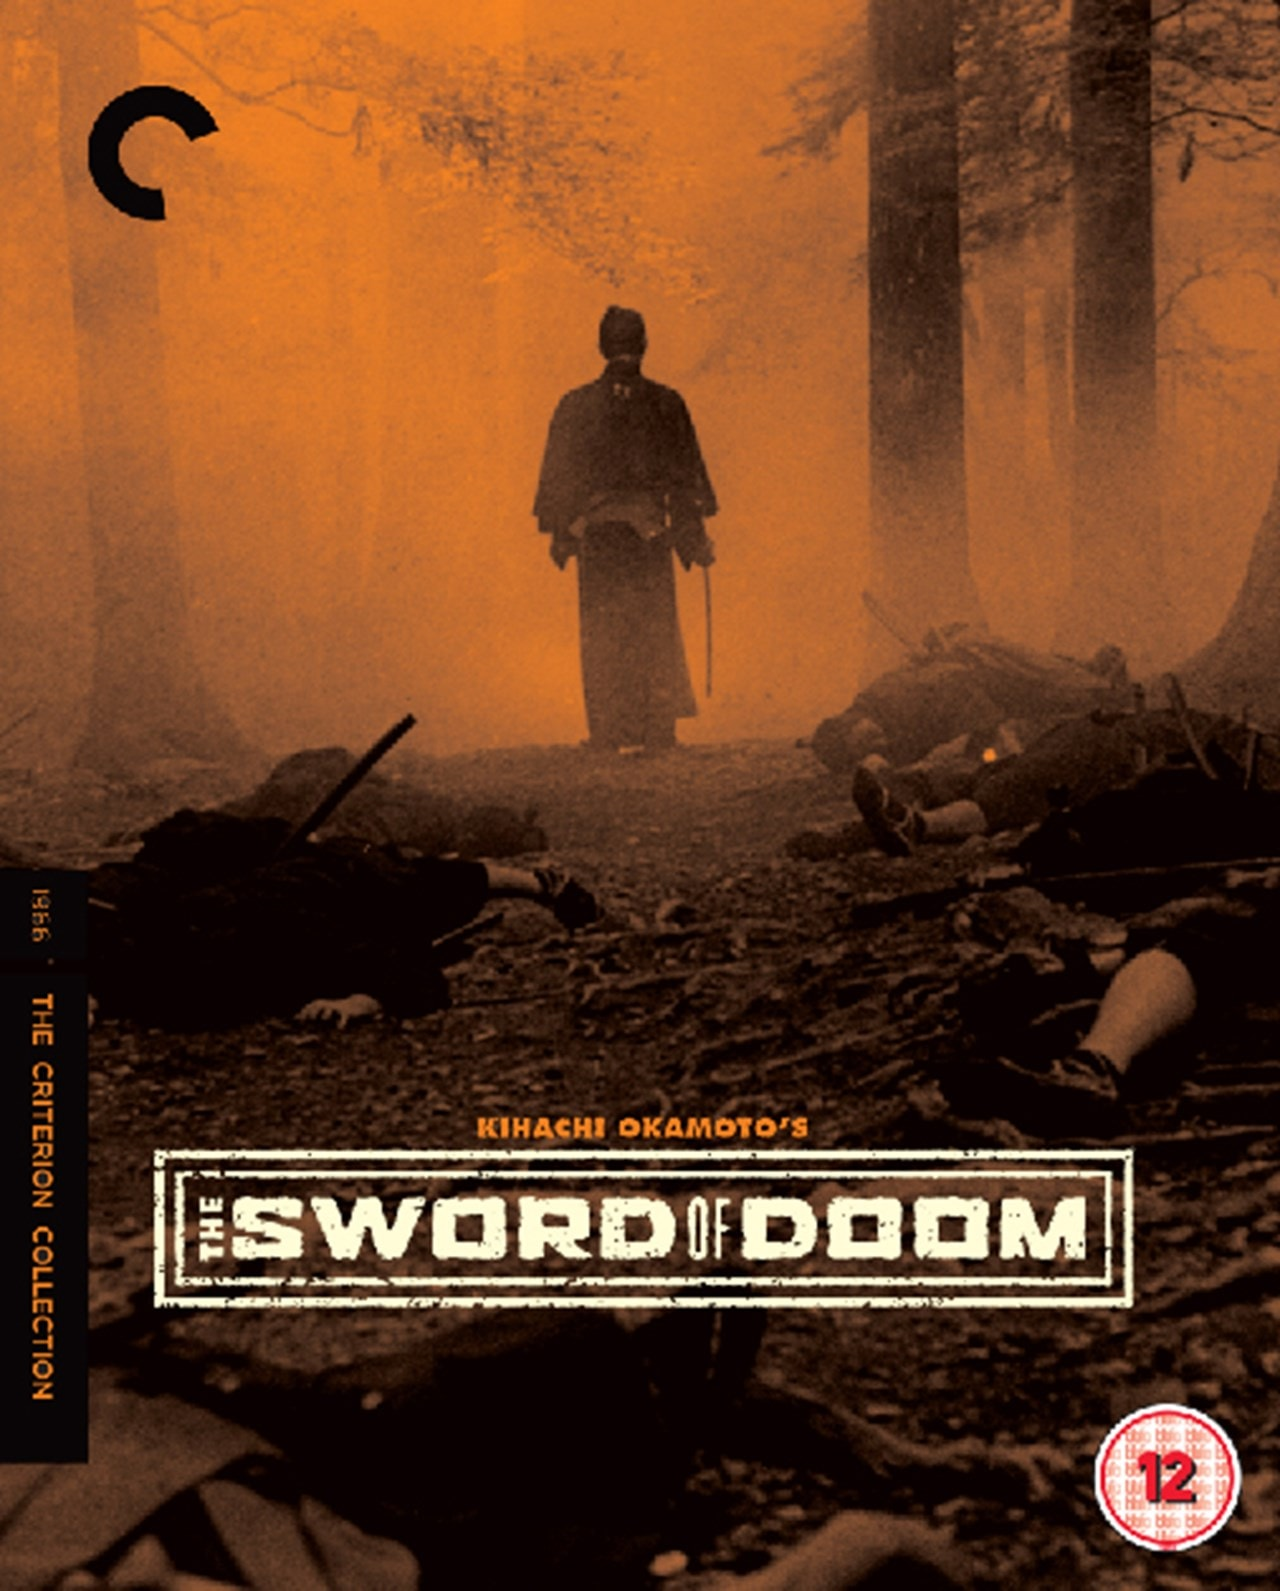 The Sword of Doom - The Criterion Collection - 1